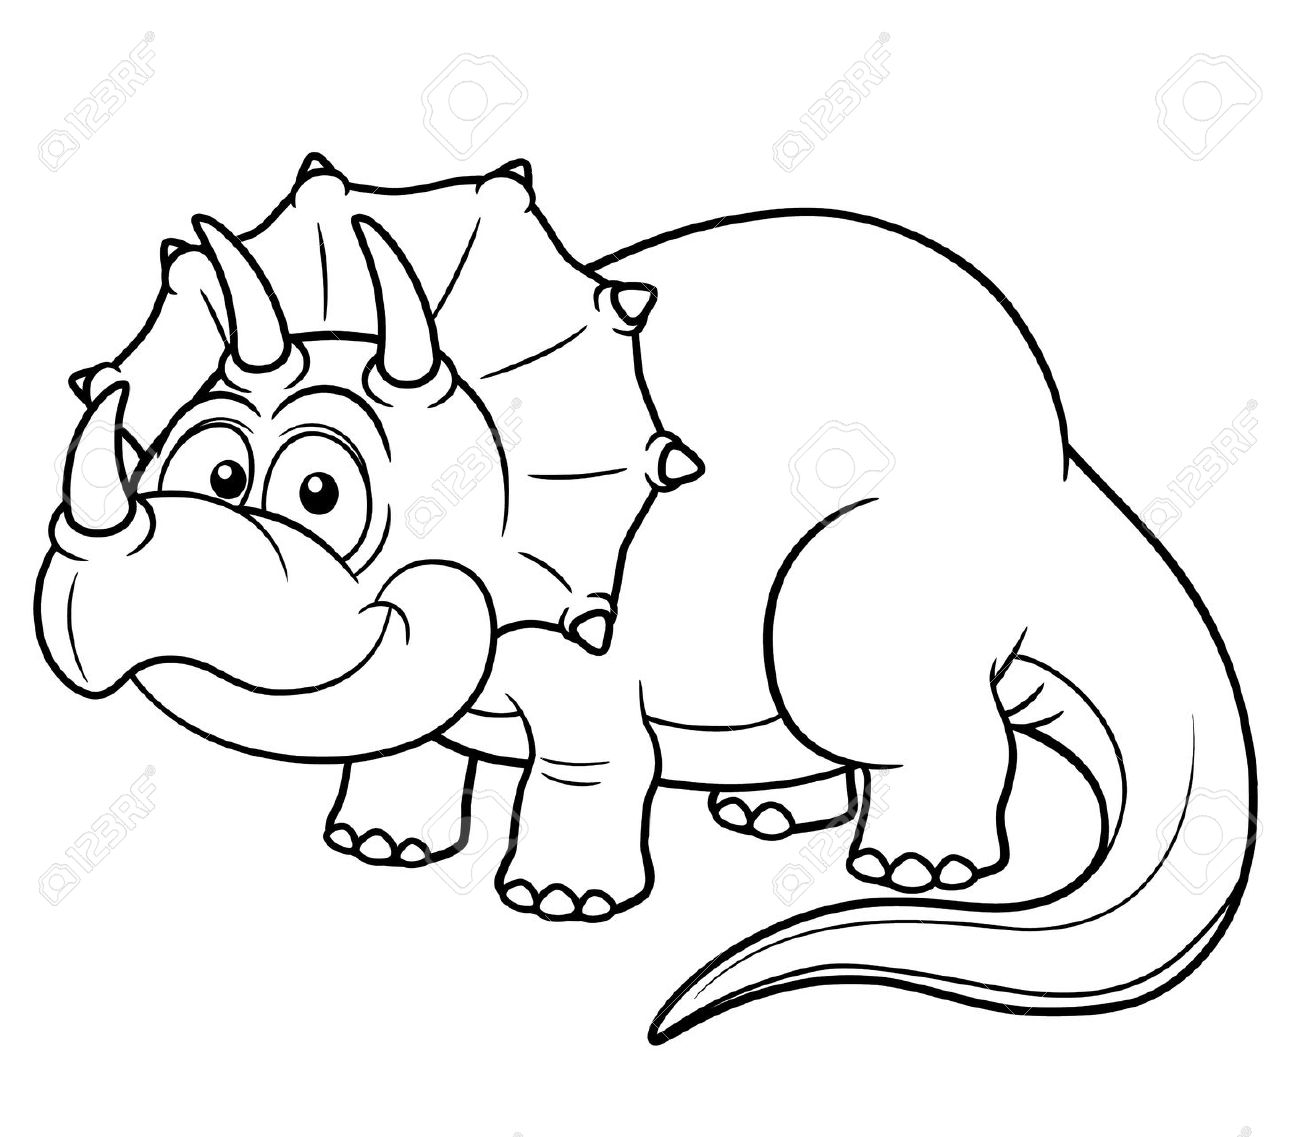 1300x1137 Dinosaur Coloring Book Printable Coloring Image Coloring Pages